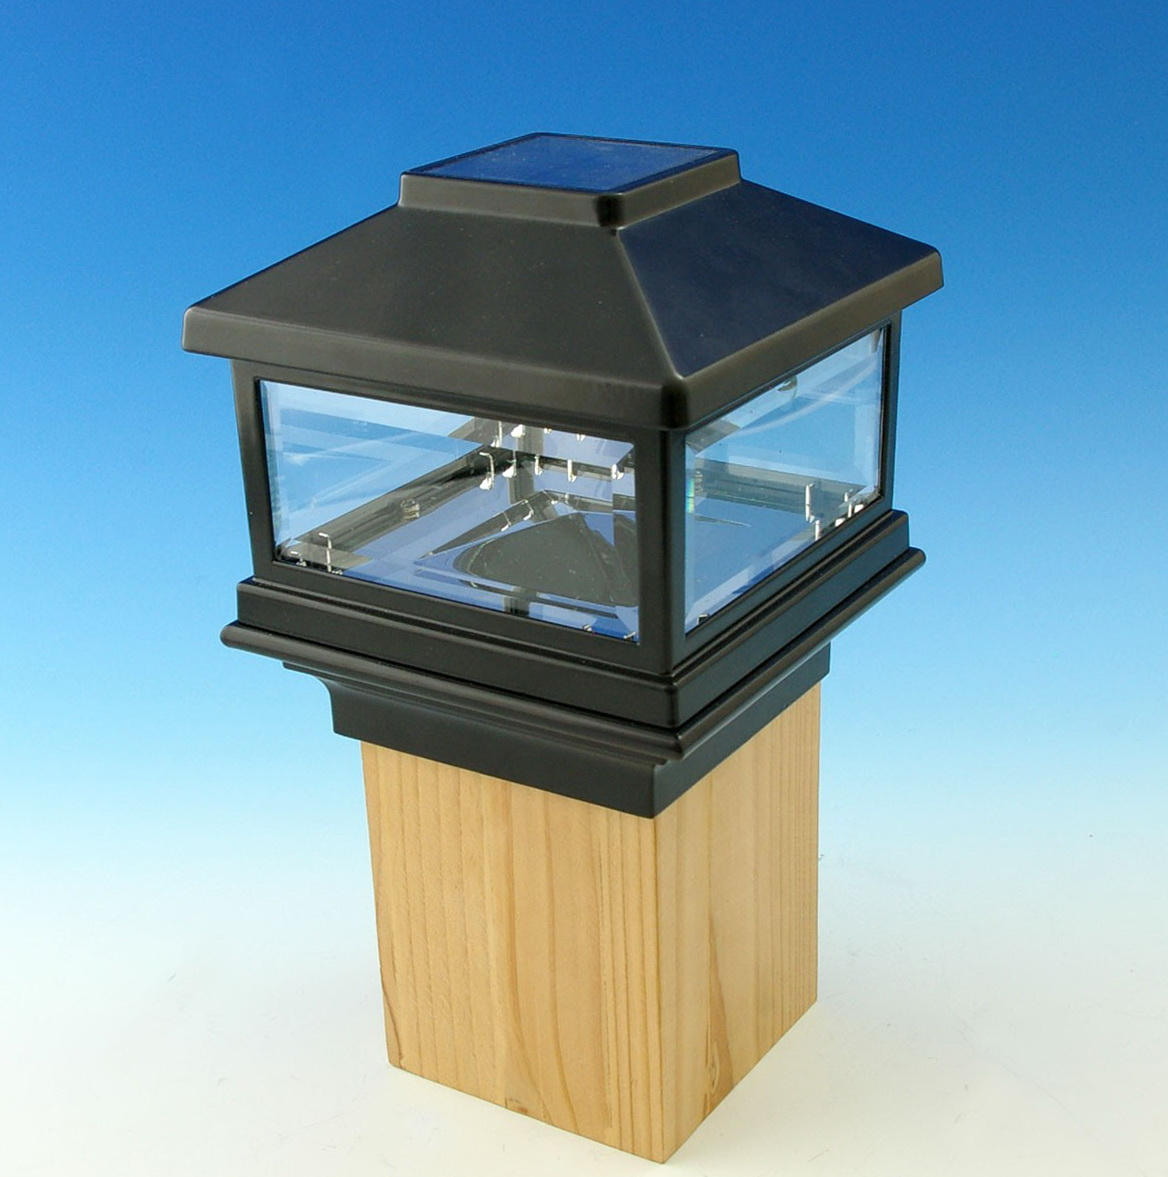 Solar Lights For Deck Posts Home Depot